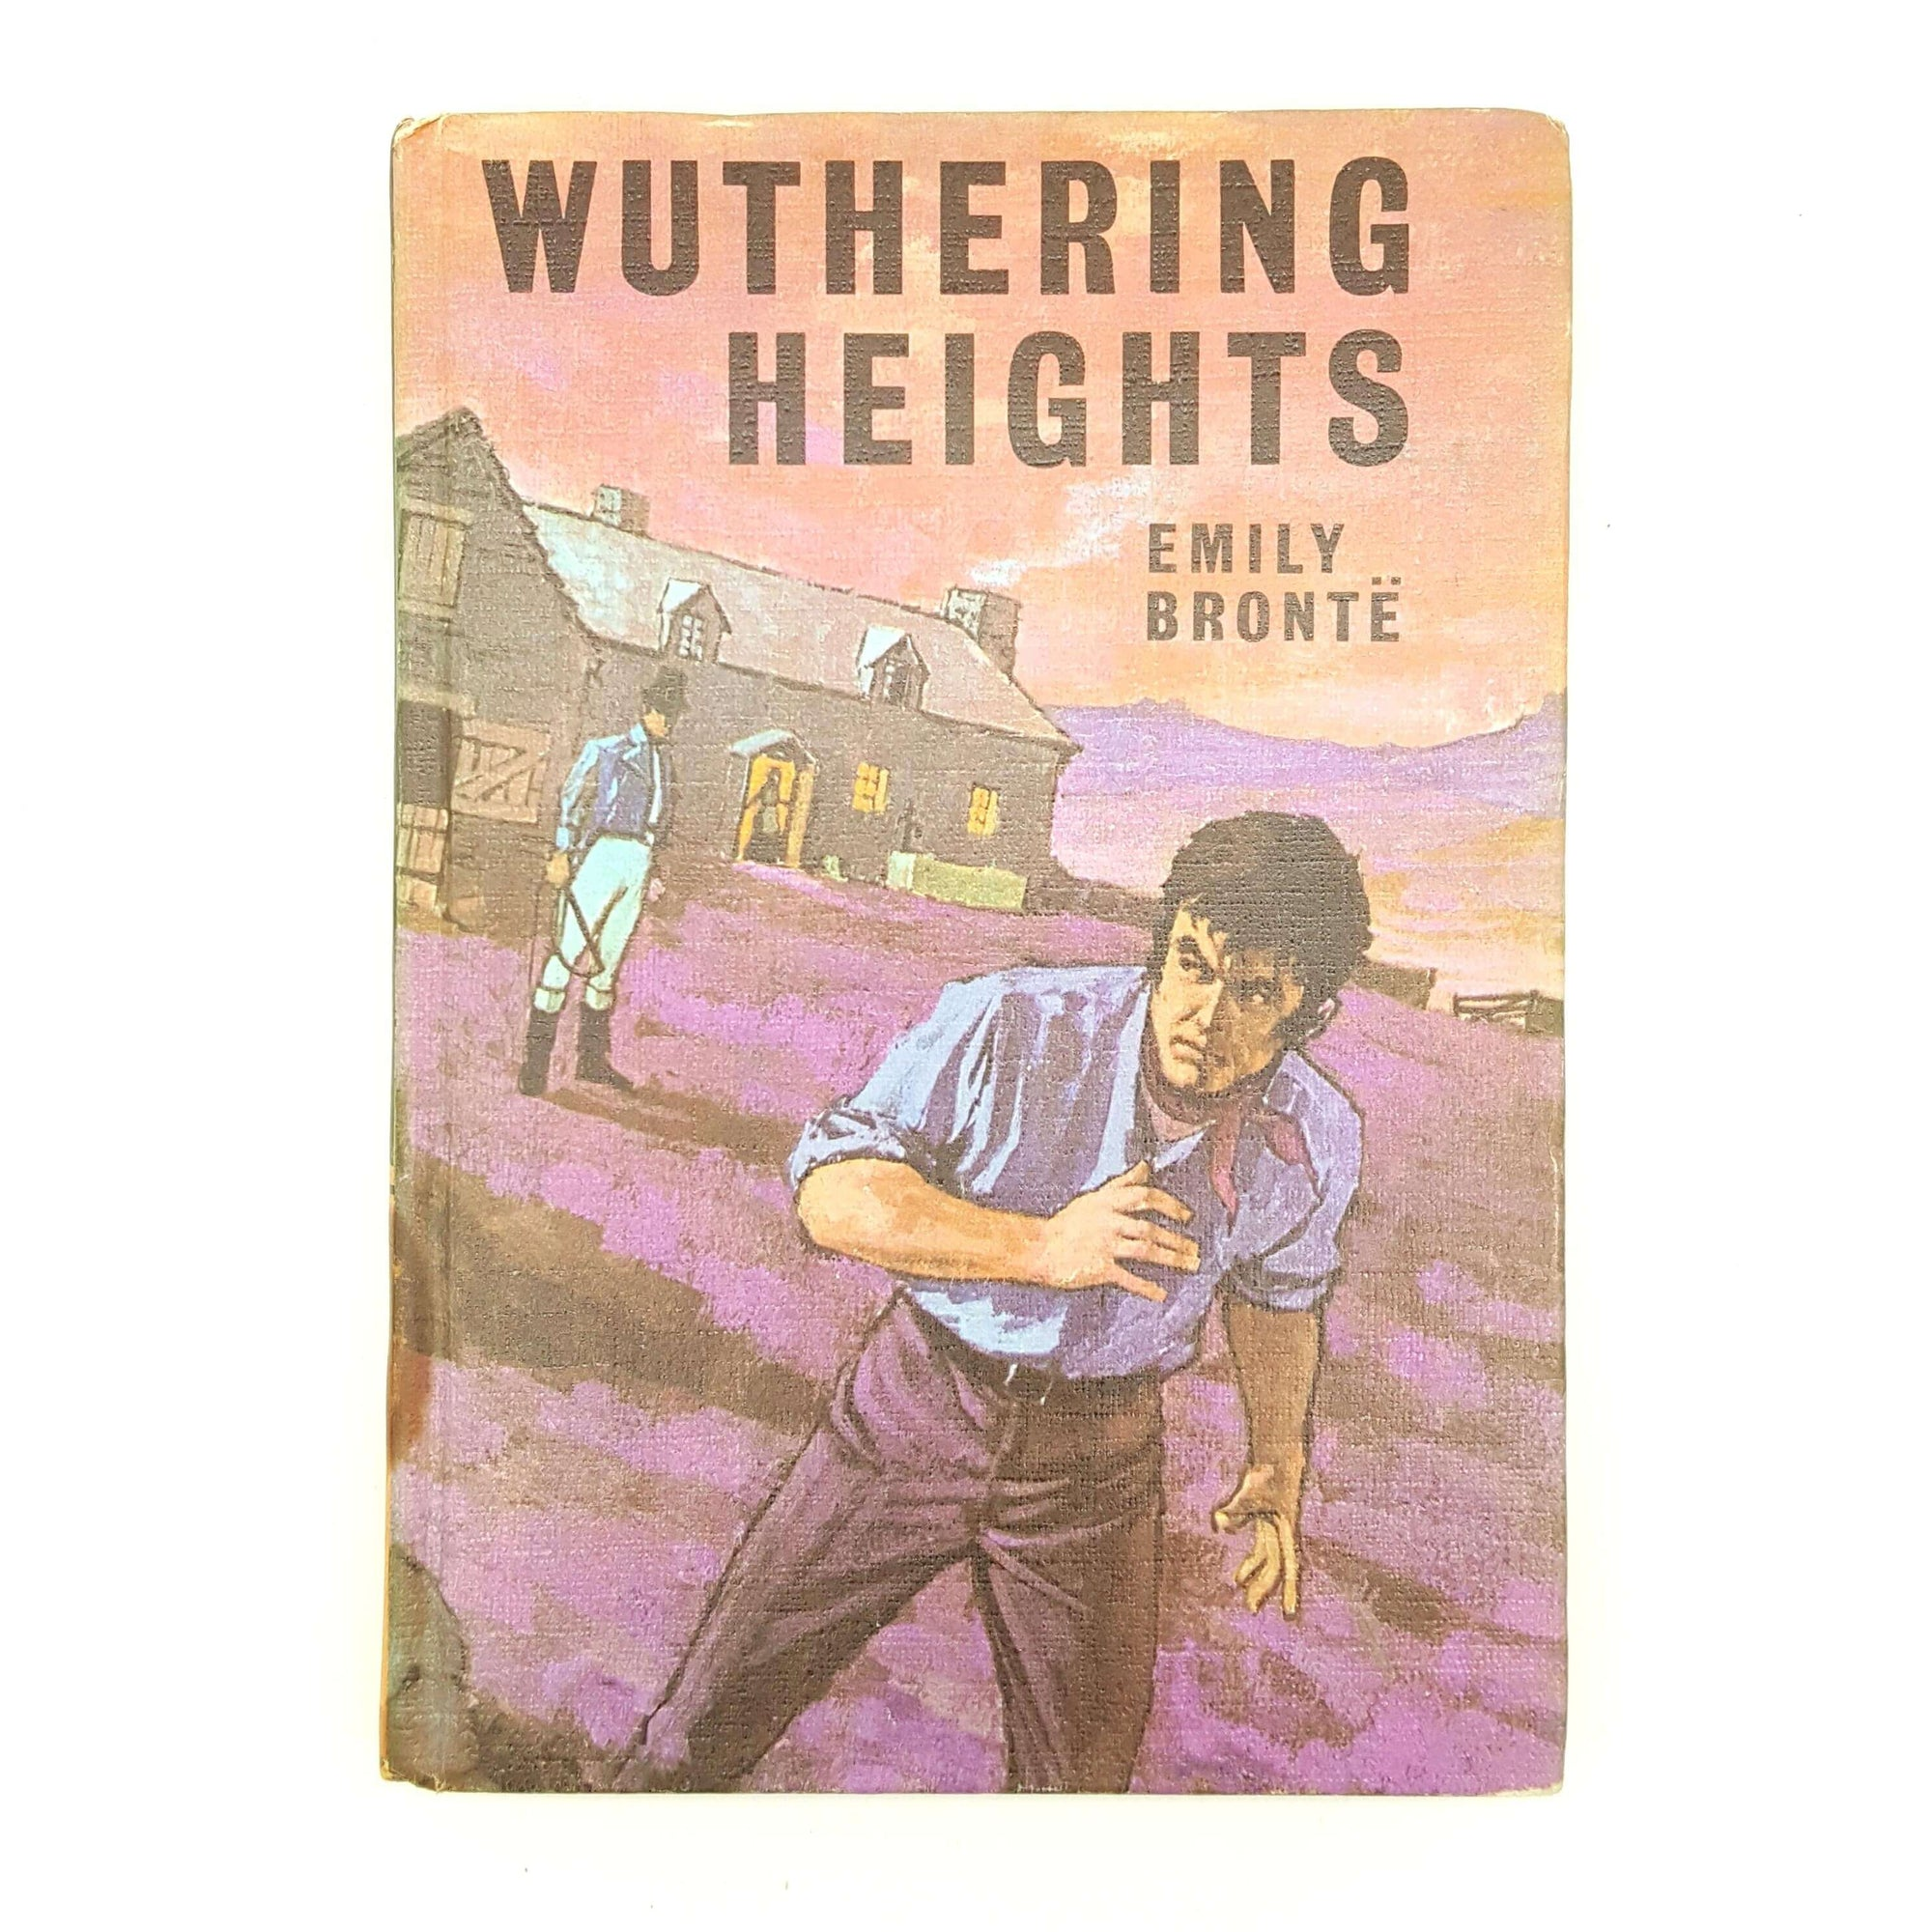 Wuthering Heights by Emily Bronte - Bancroft Books Country House Library